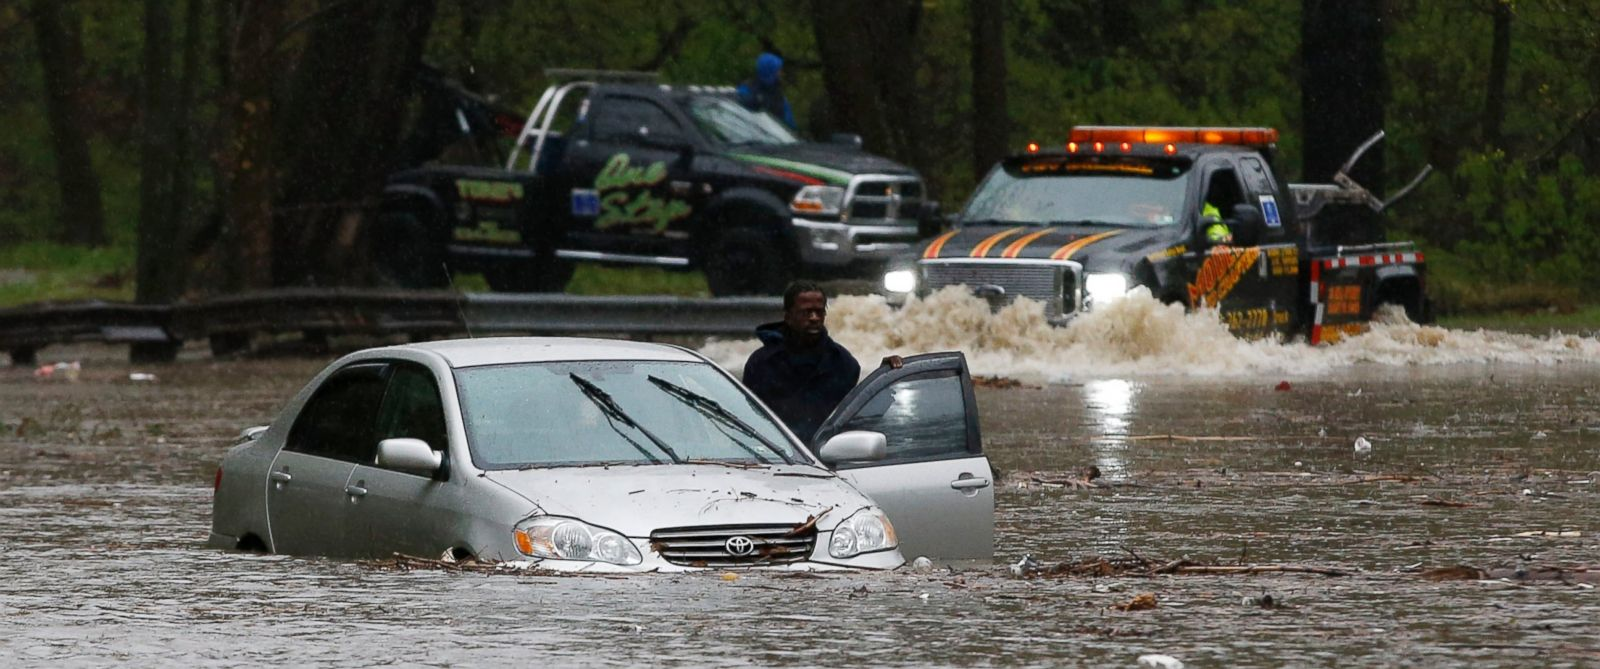 PHOTO: A man waits for a tow truck after getting swamped trying to cross a flooded section of the Cobbs Creek Parkway, April 30, 2014, in Philadelphia.